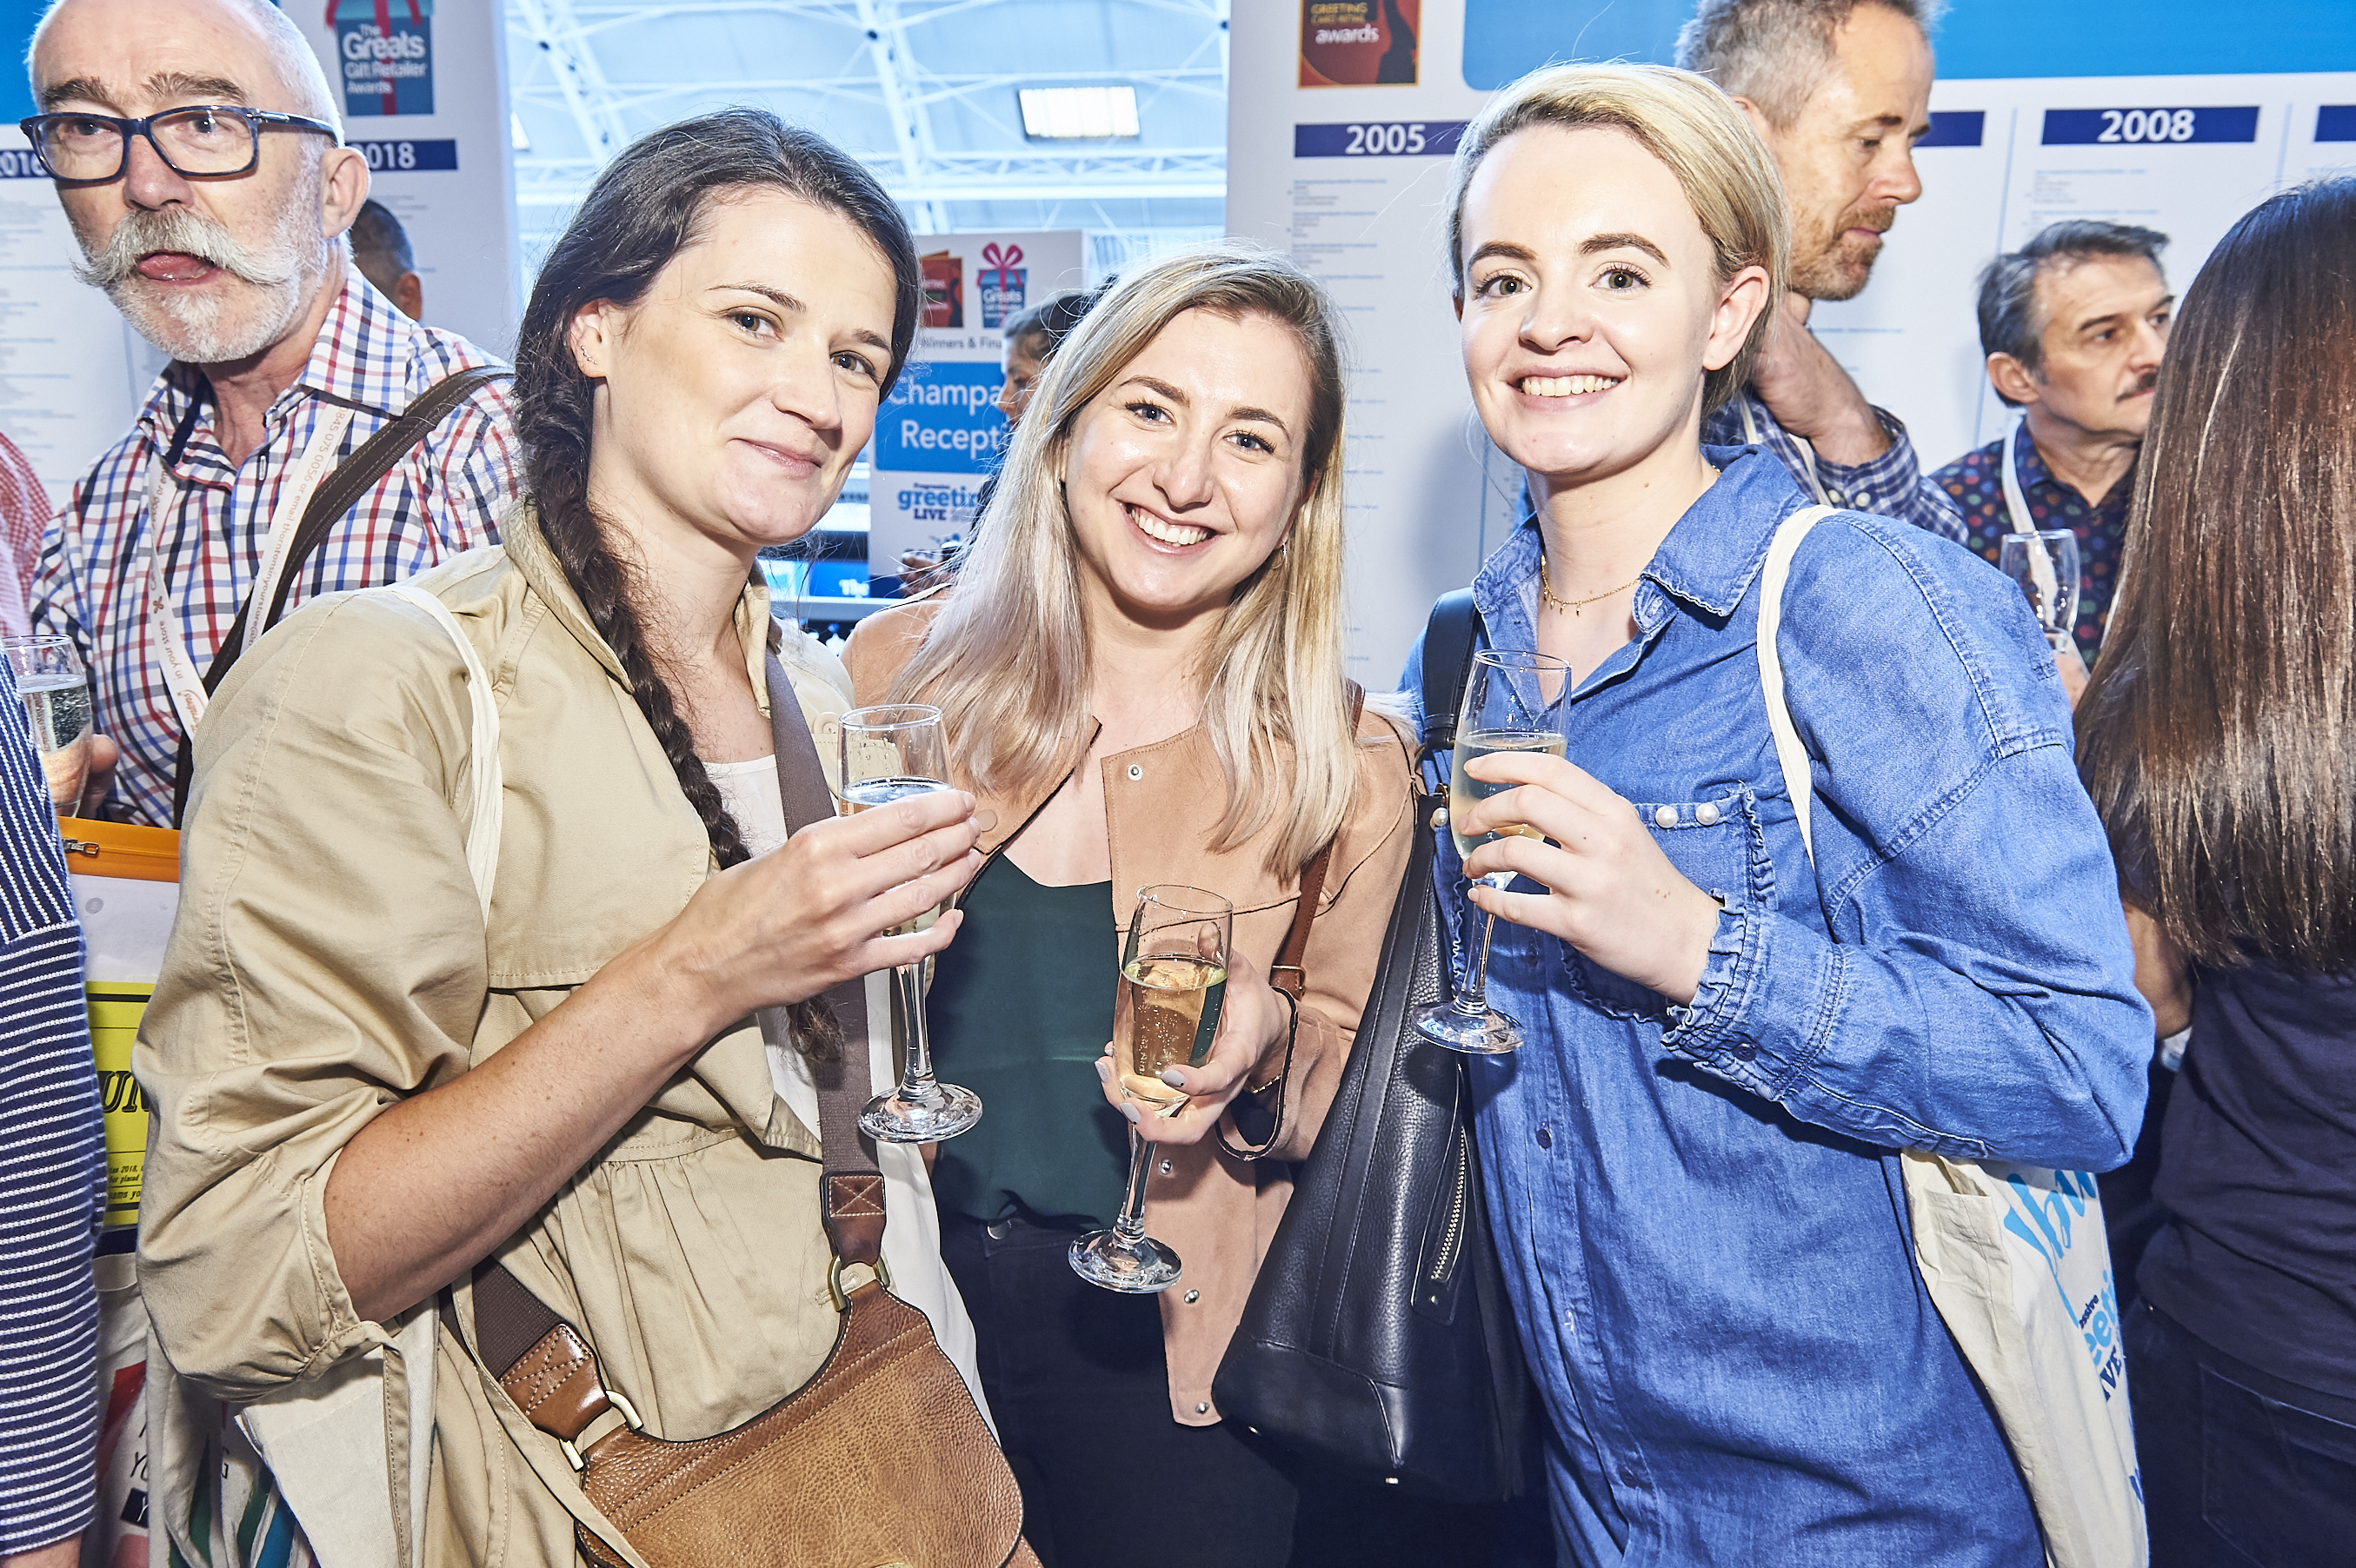 Above:Natalia Kosterska (centre) with Oliver Bonas colleagues Siobhain Watkins (left) and Rachael Pearson at PG Live in June.